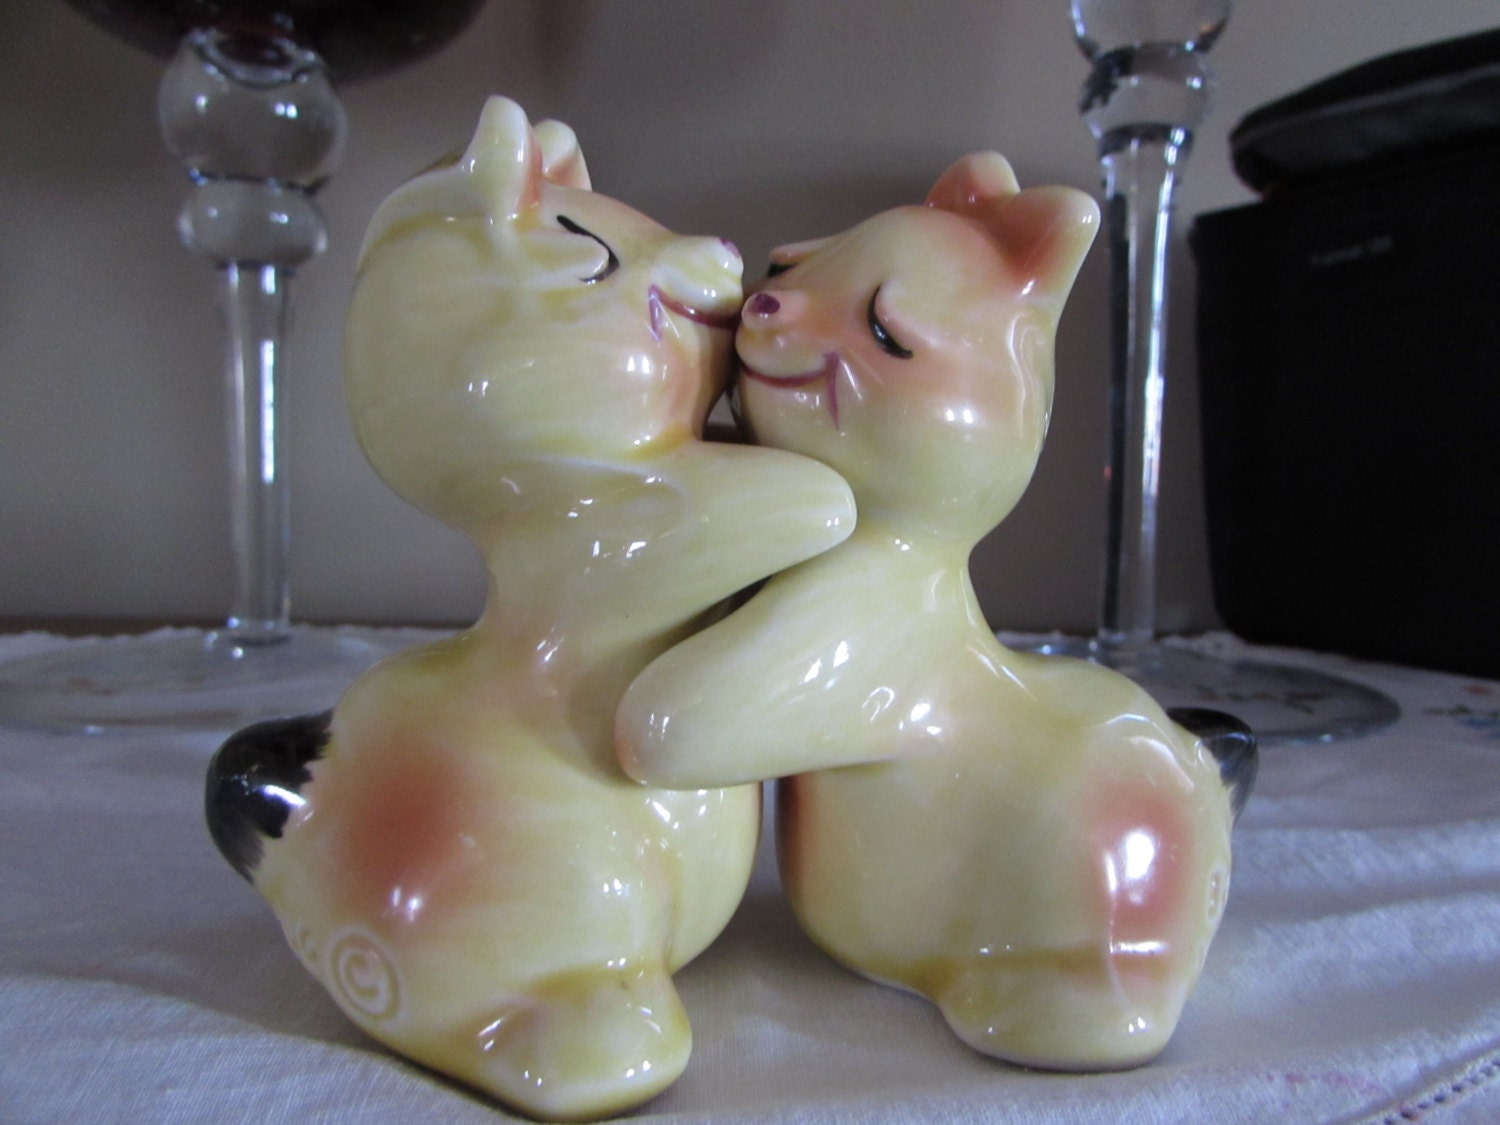 Hugging bunny salt and pepper shakers hard to find vintage - Hugging salt and pepper shakers ...